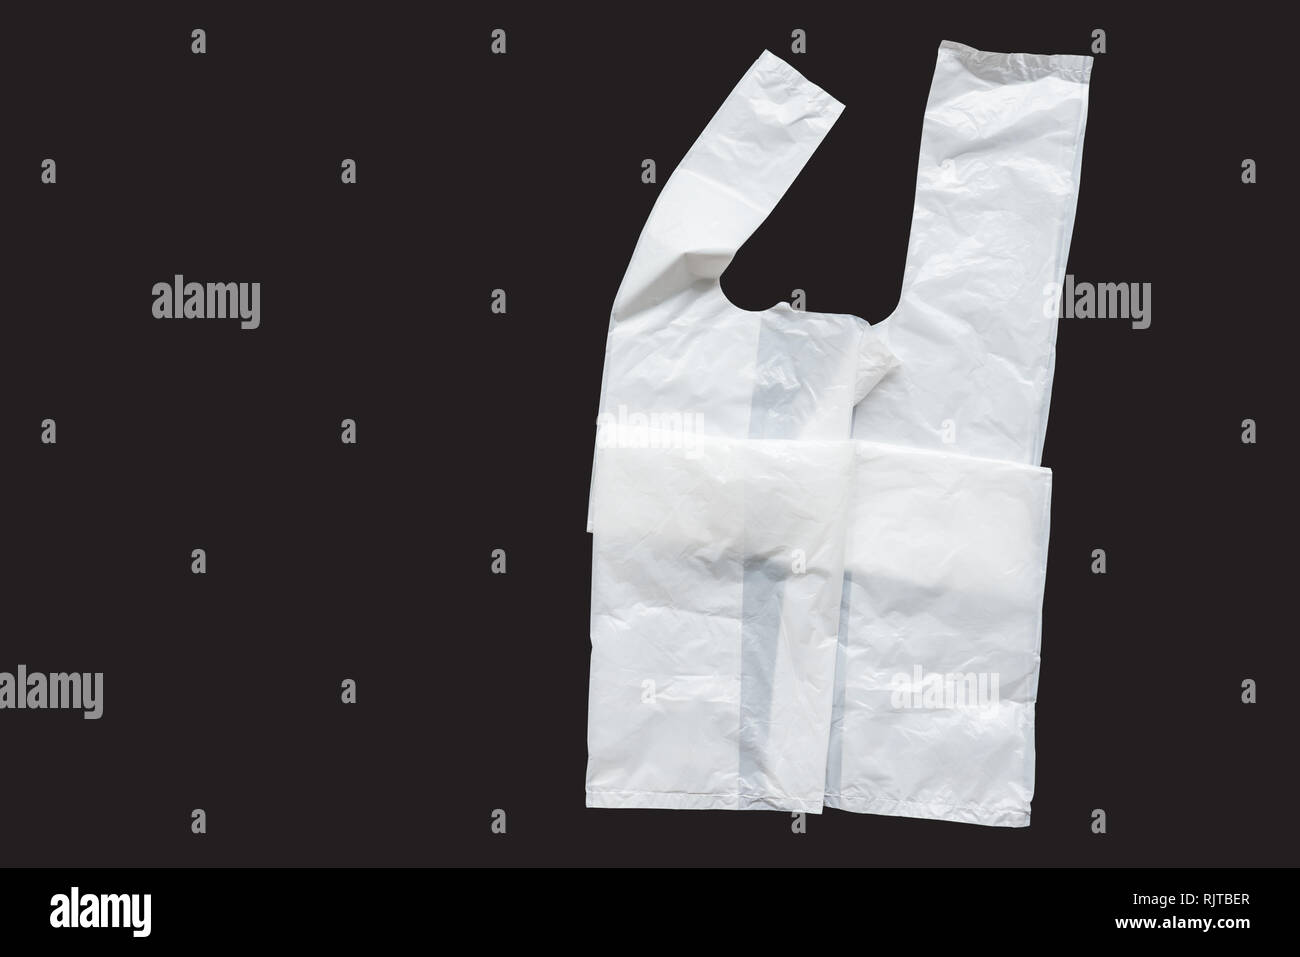 Plastic bag on a dark background - Stock Image